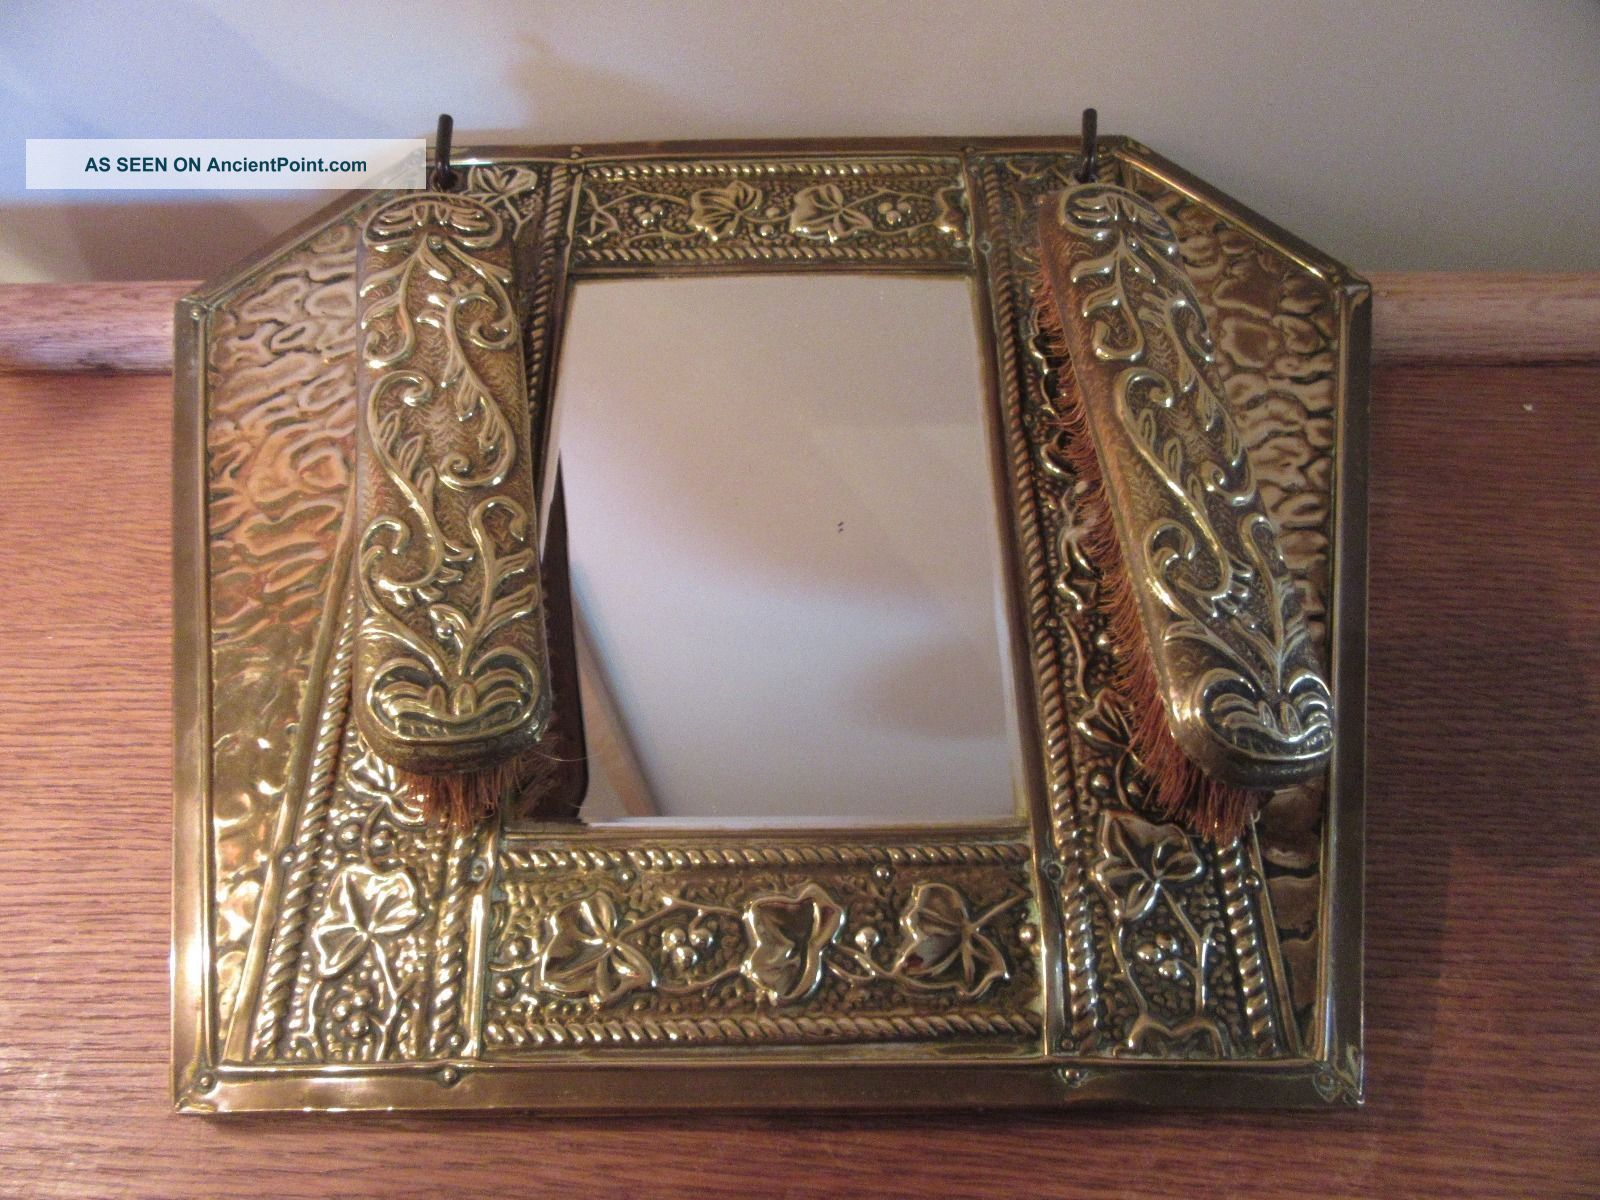 Vintage Art Deco Brass Hall Mirror With Clothes Brushes 20th Century photo